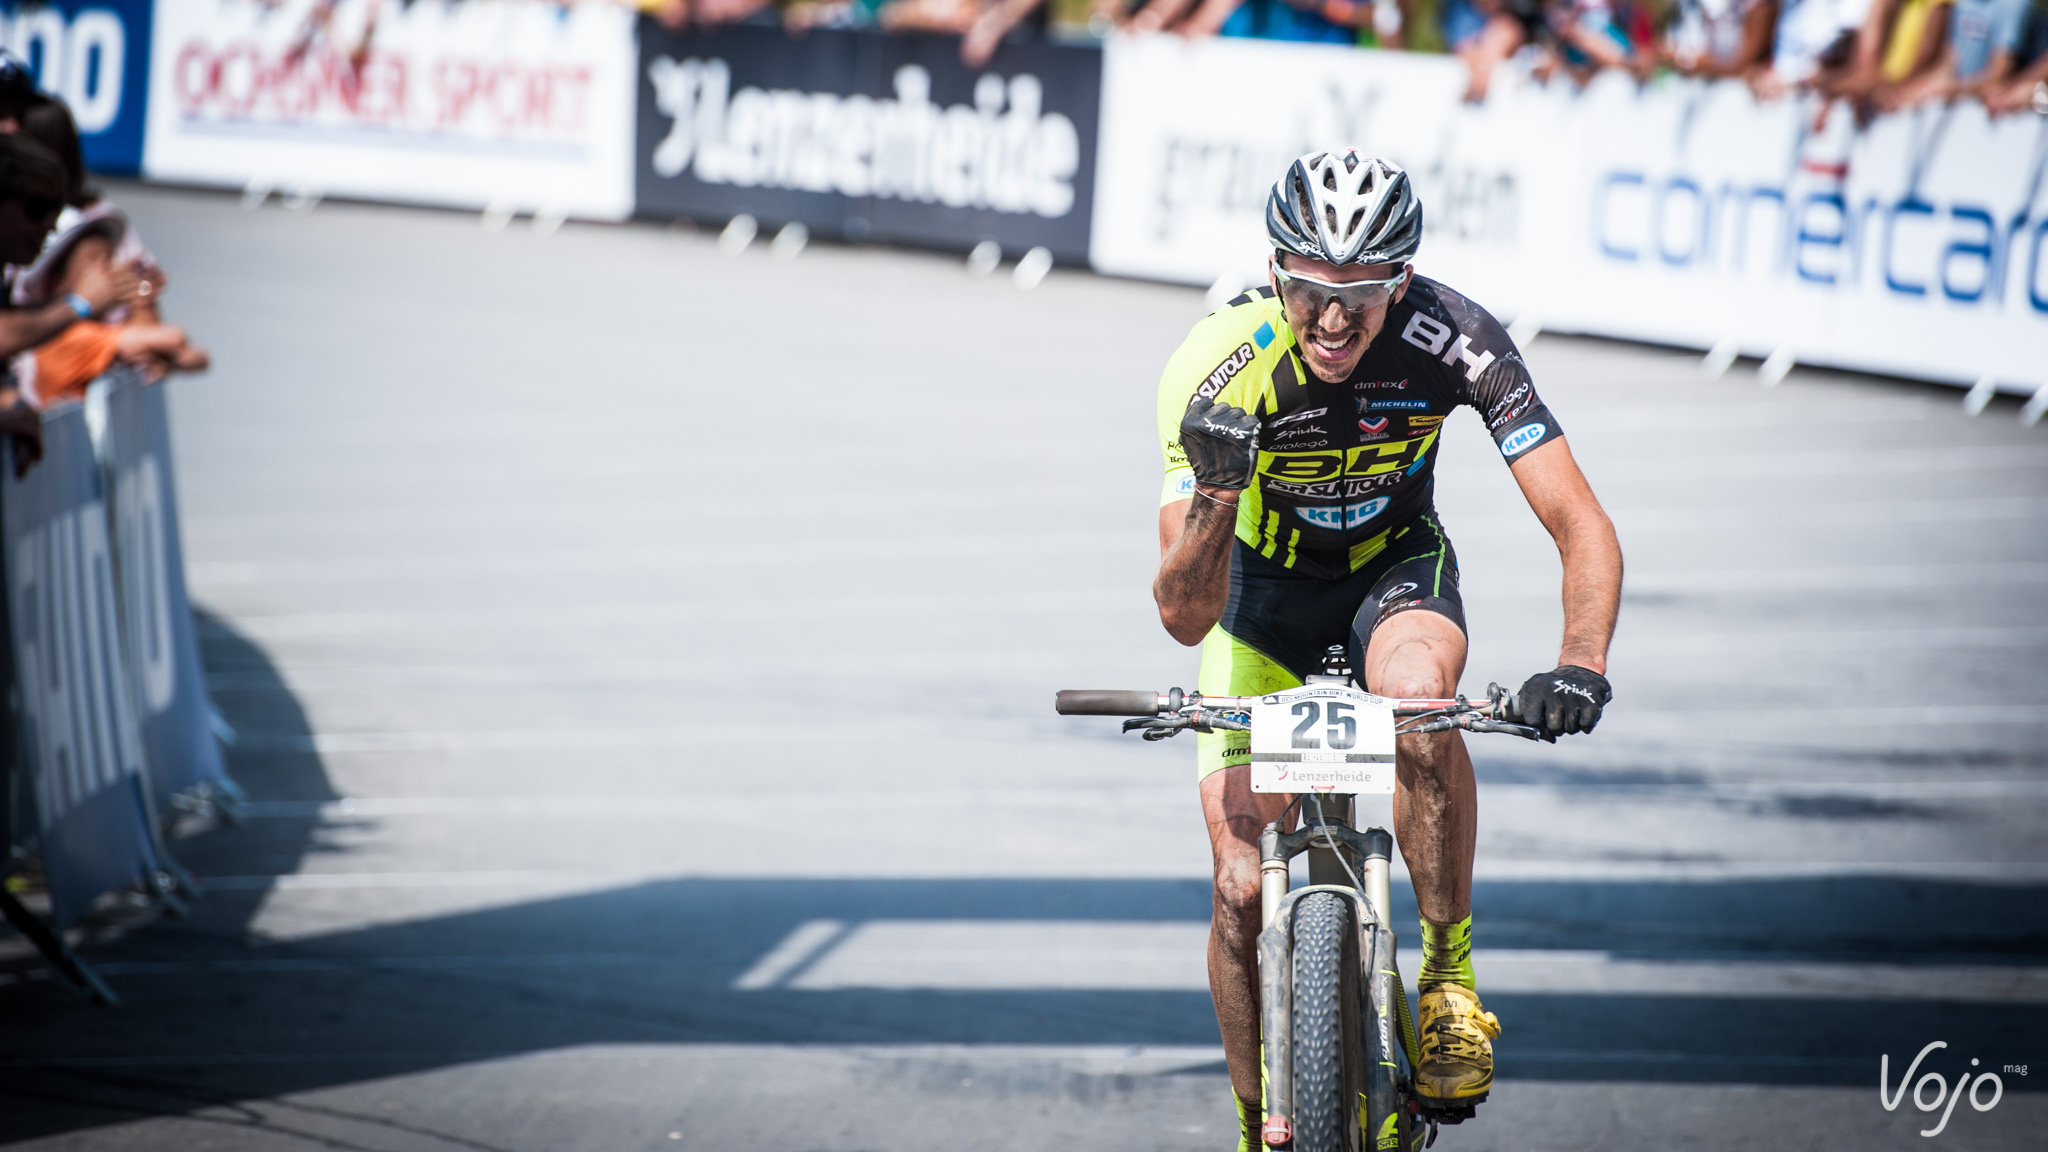 Light-WorldCup-Lenzerheide-2015-XCO-Hommes-35